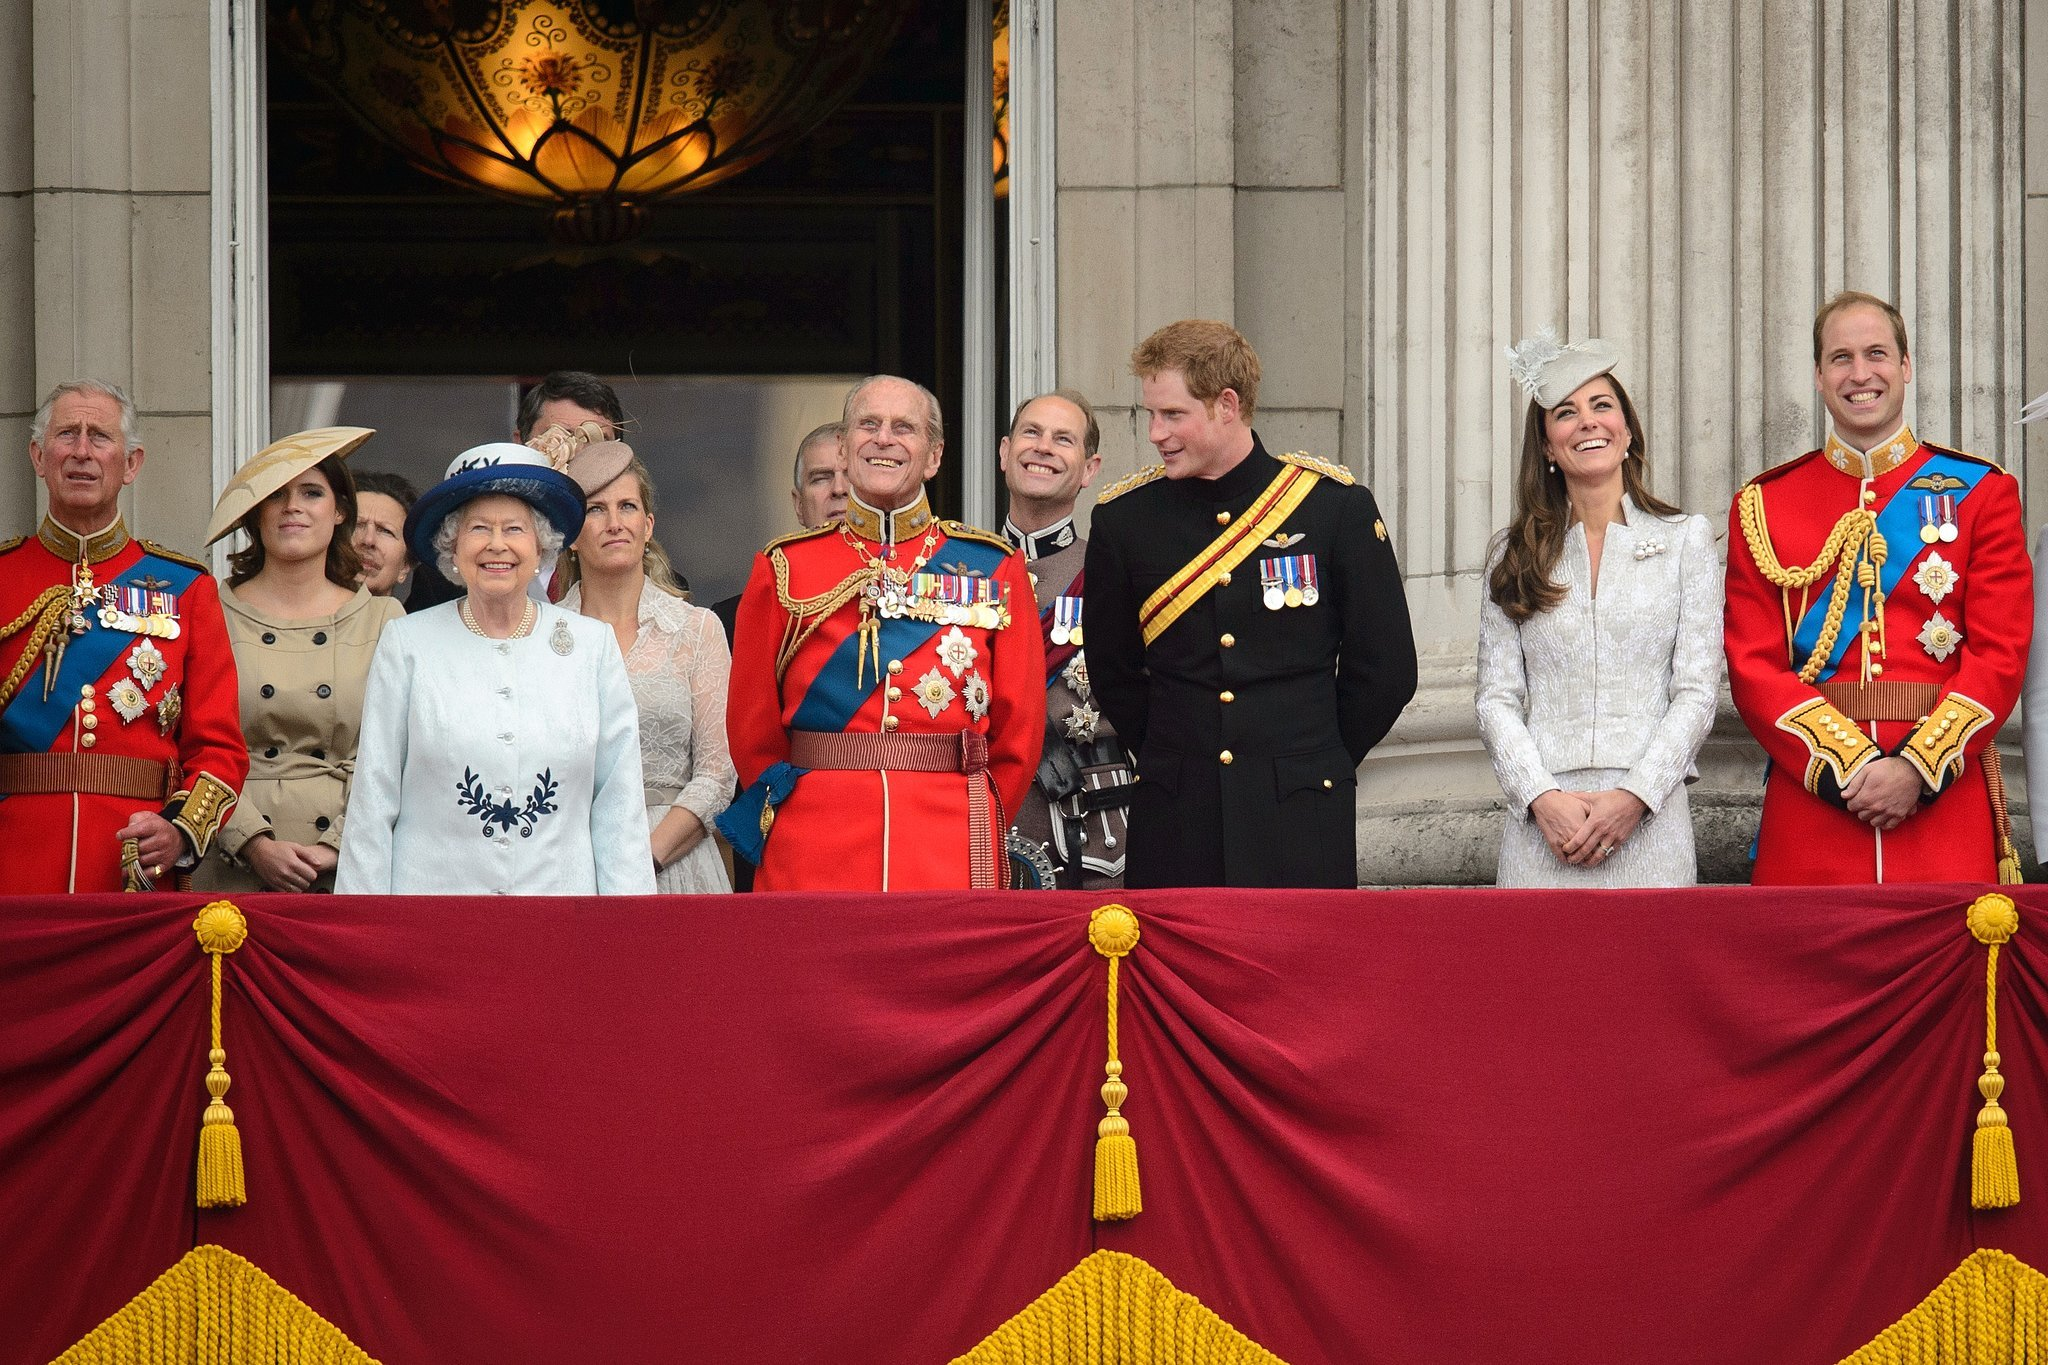 Trooping the Colour or the Queen's Birthday